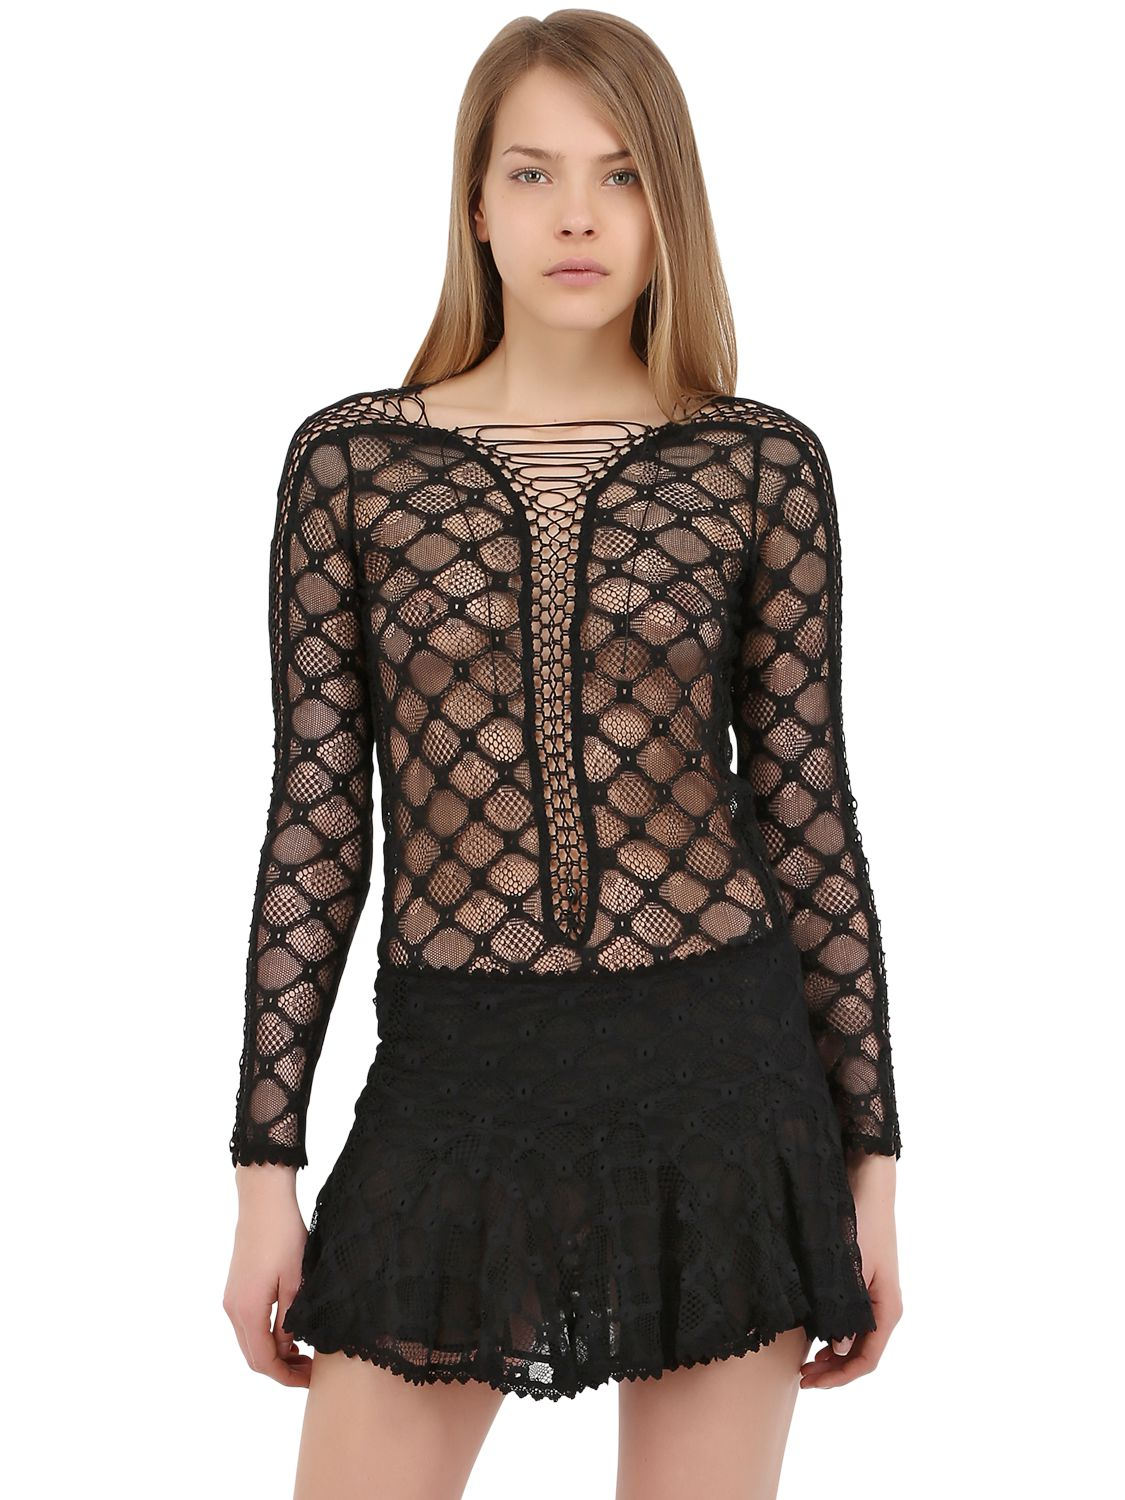 Isabel Marant Lyst Isabel Marant Lace Up Lace Long Sleeved Top In Black